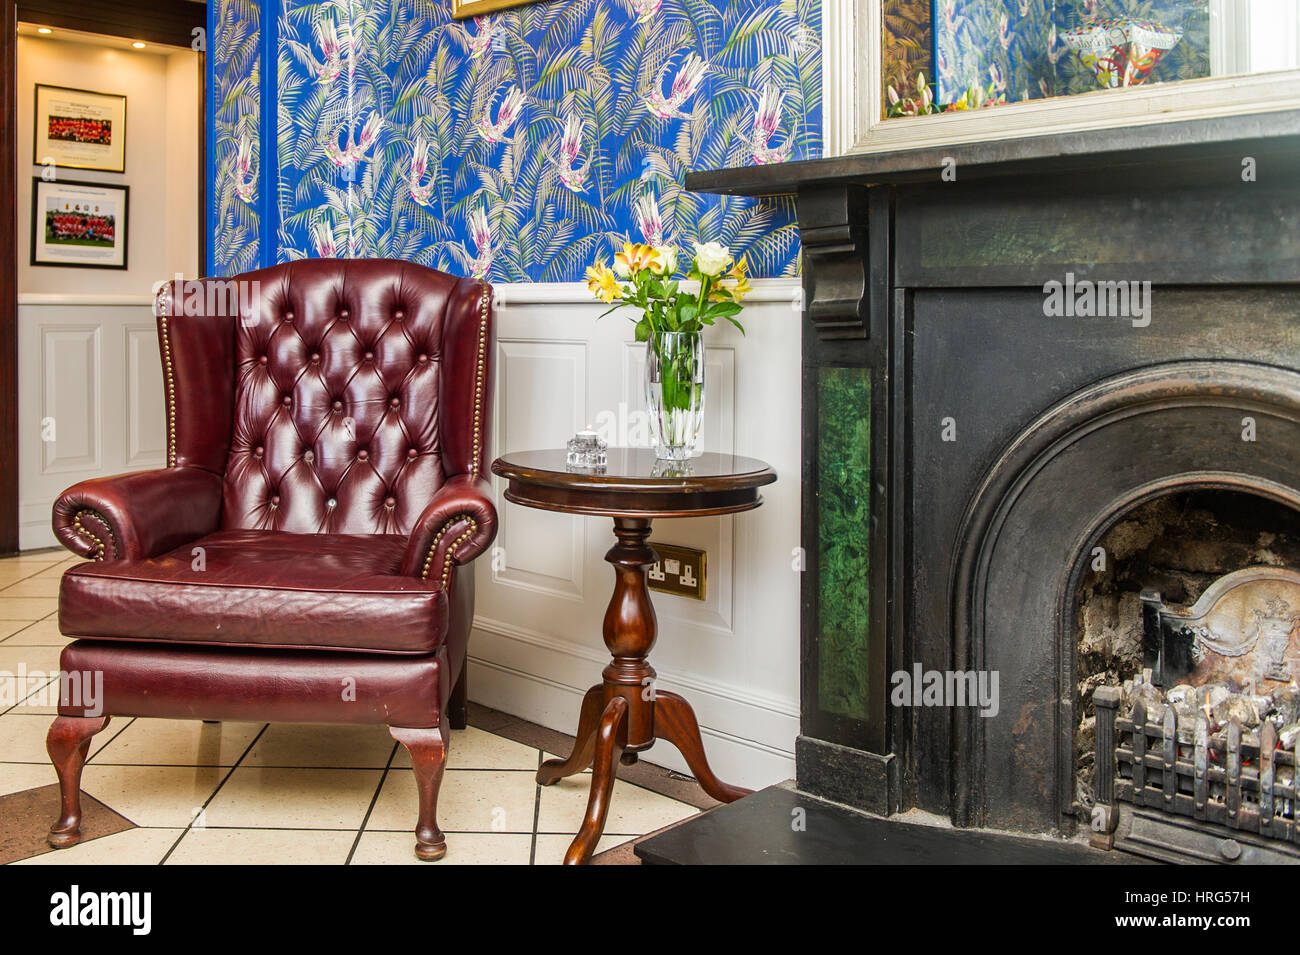 Gentleman's club style armchair next to a fireplace in a hotel reception. - Stock Image